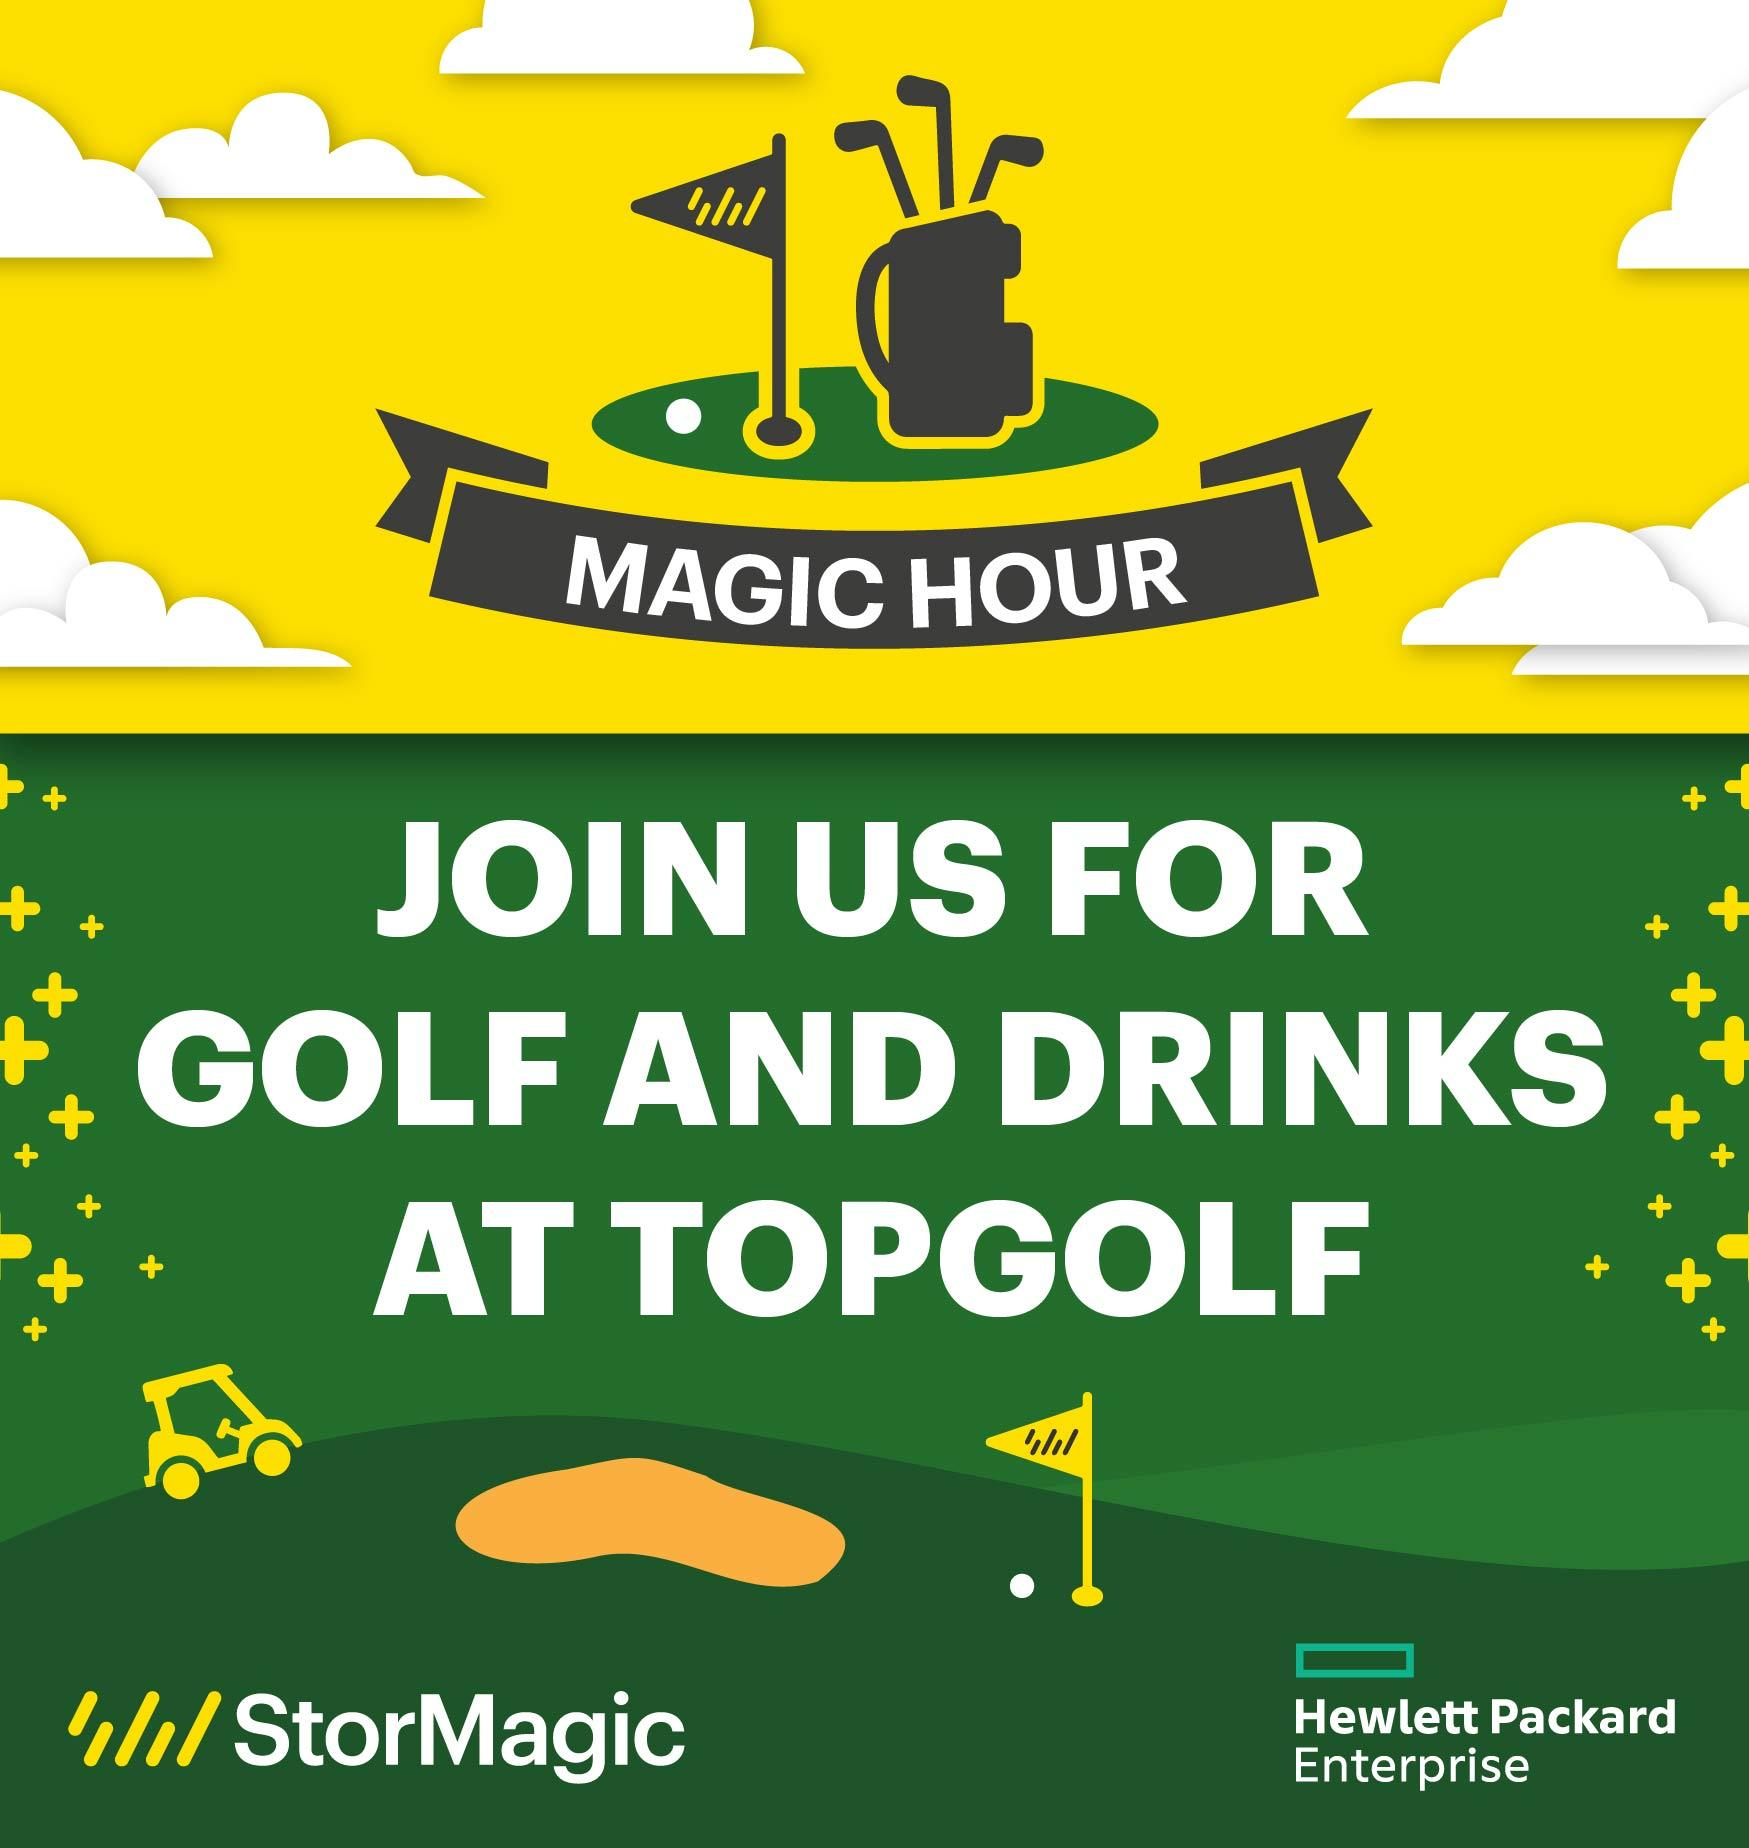 Top Golf with StorMagic and HPE